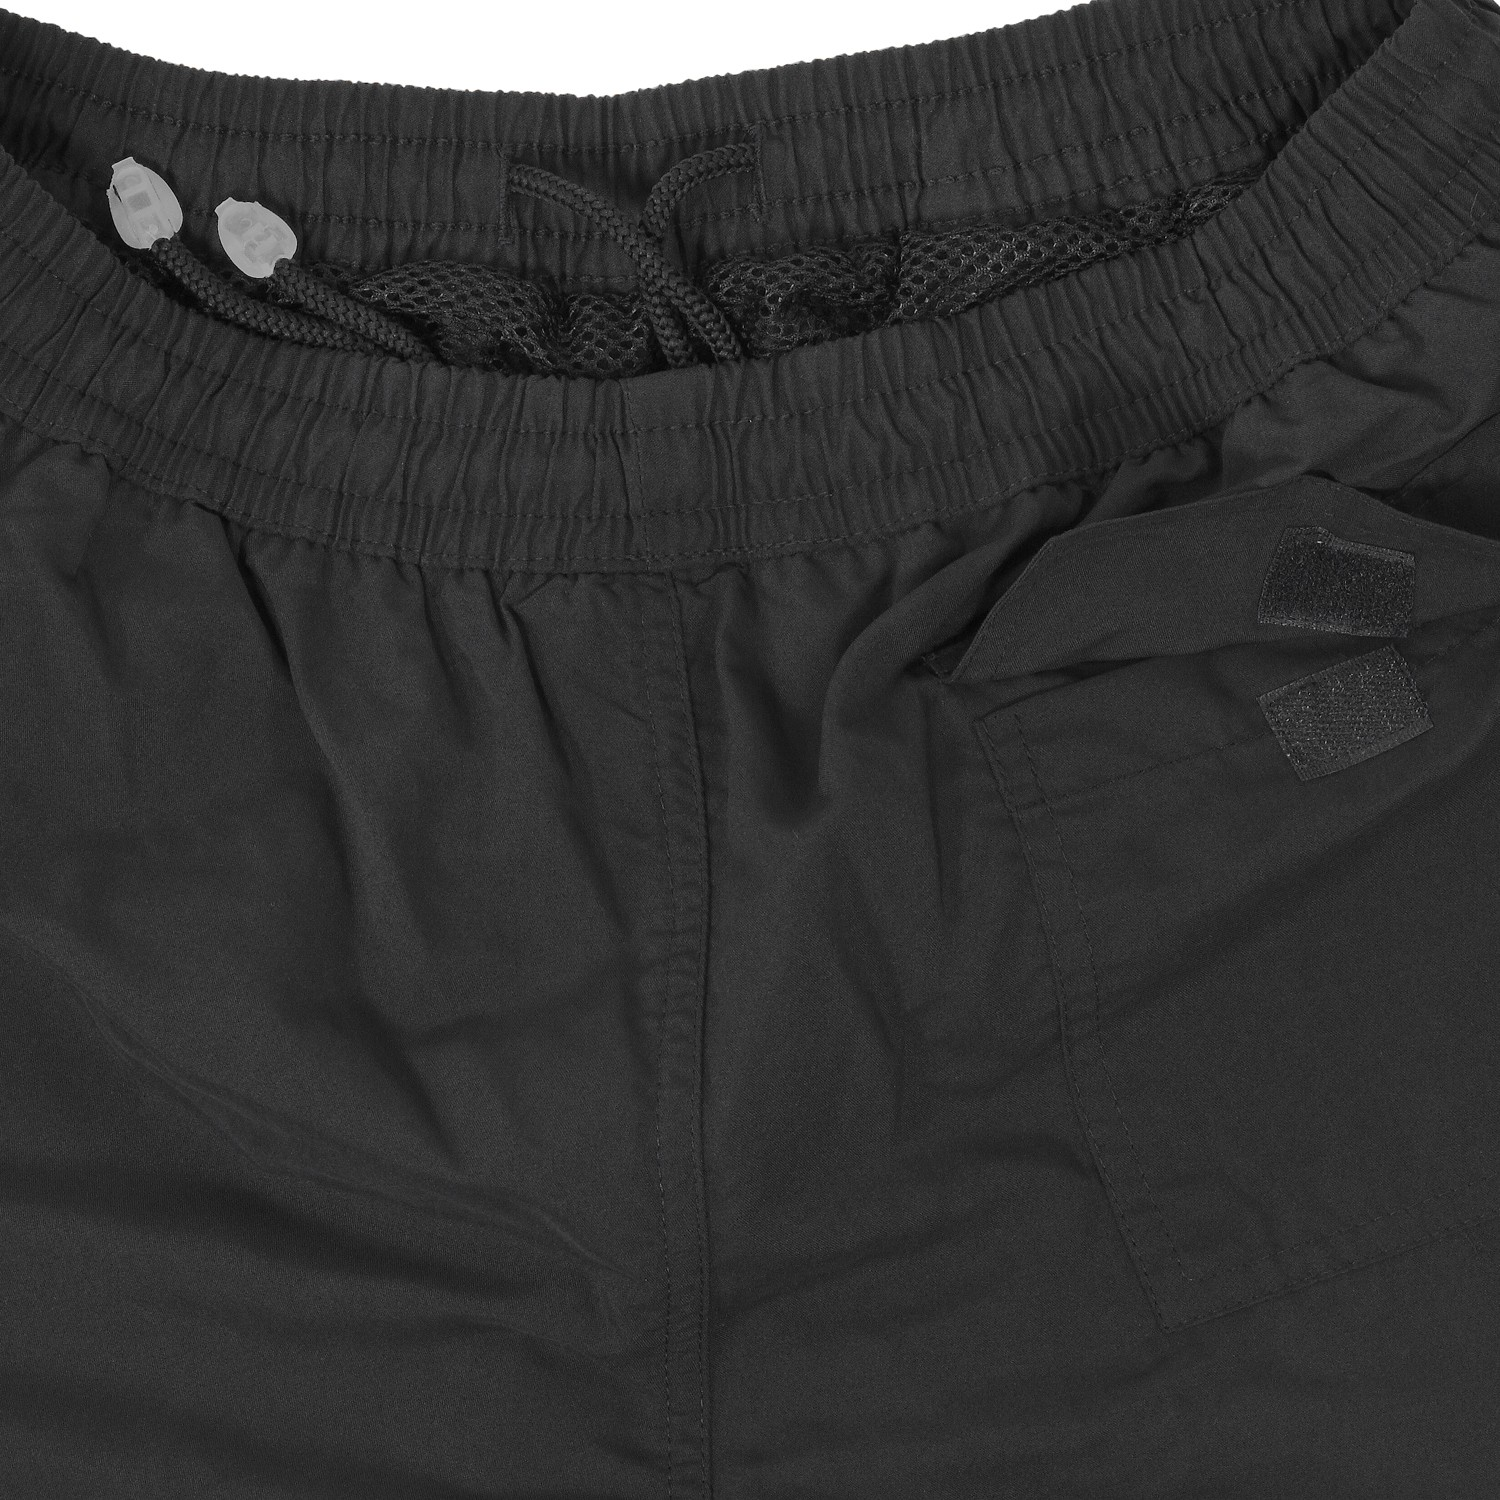 Detail Image to Black sportive microfiber fitness short by Ahorn Sportswear in plus sizes up to 10 XL